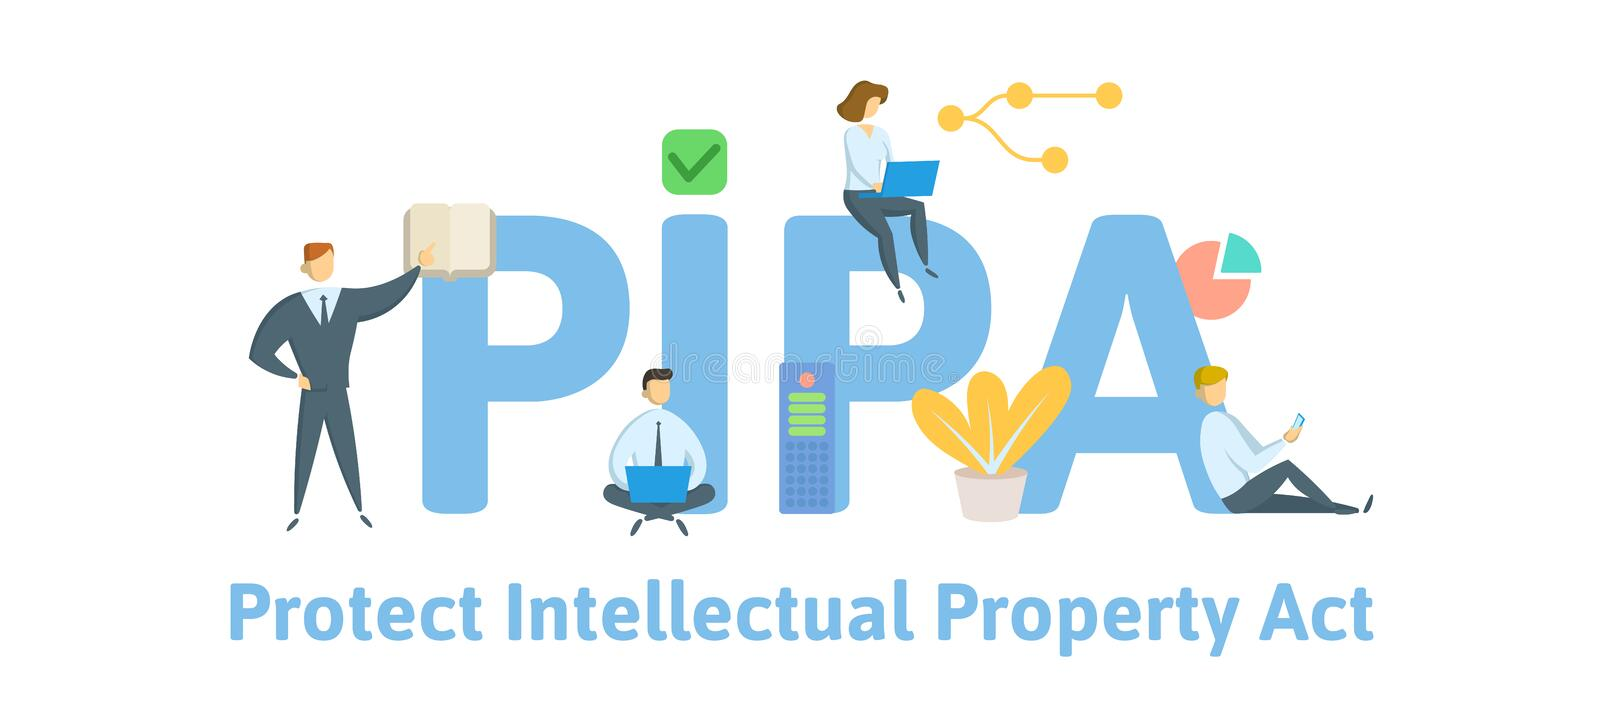 PIPA, Protect Intellectual Property Act. Concept with people, keywords and icons. Flat vector illustration. Isolated on. PIPA, Protect Intellectual Property Act stock illustration